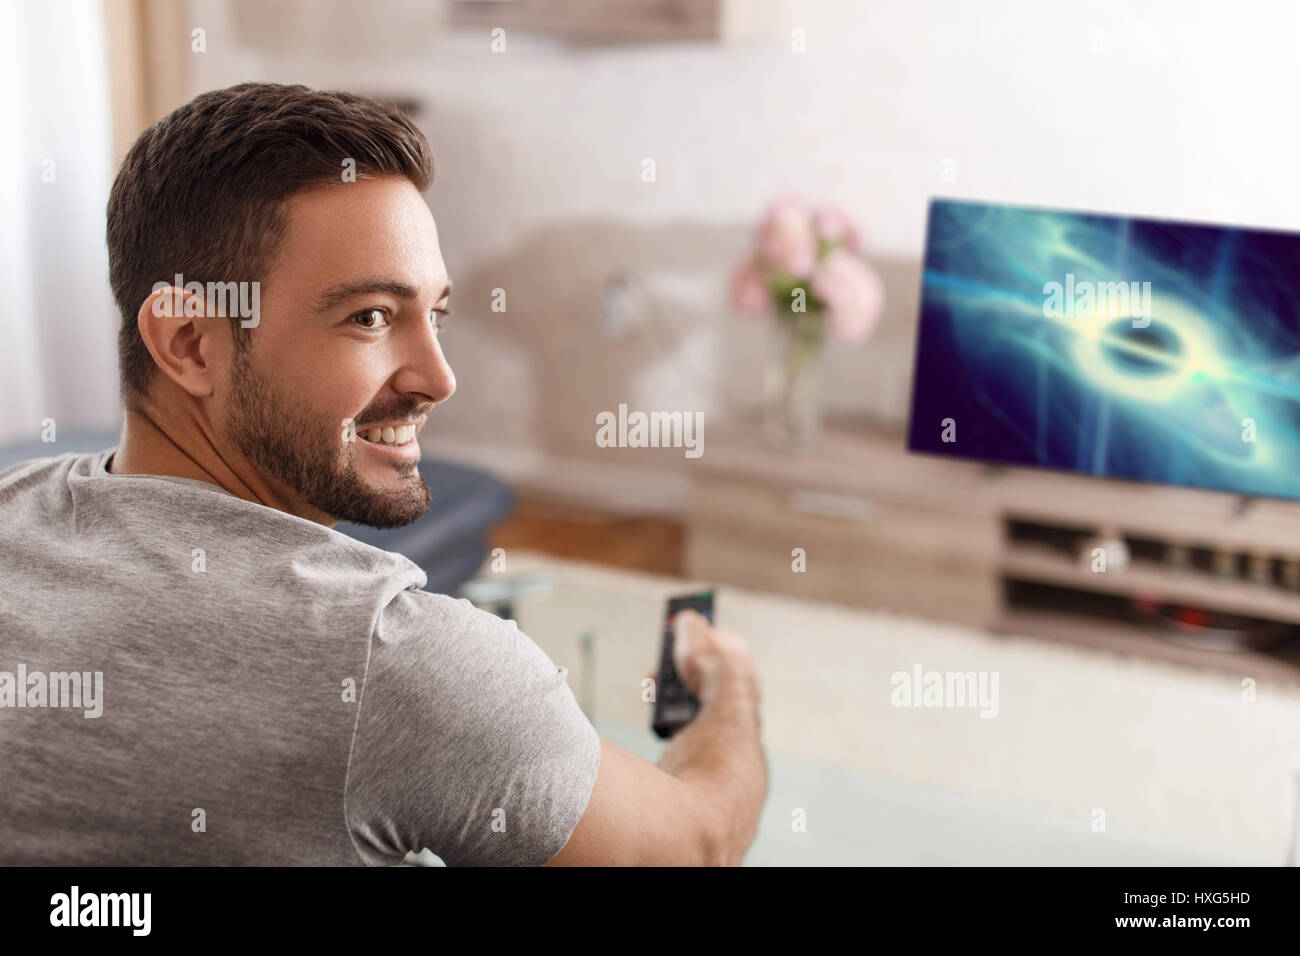 Excited man switch TV to sci-fi movie by remote control - Stock Image